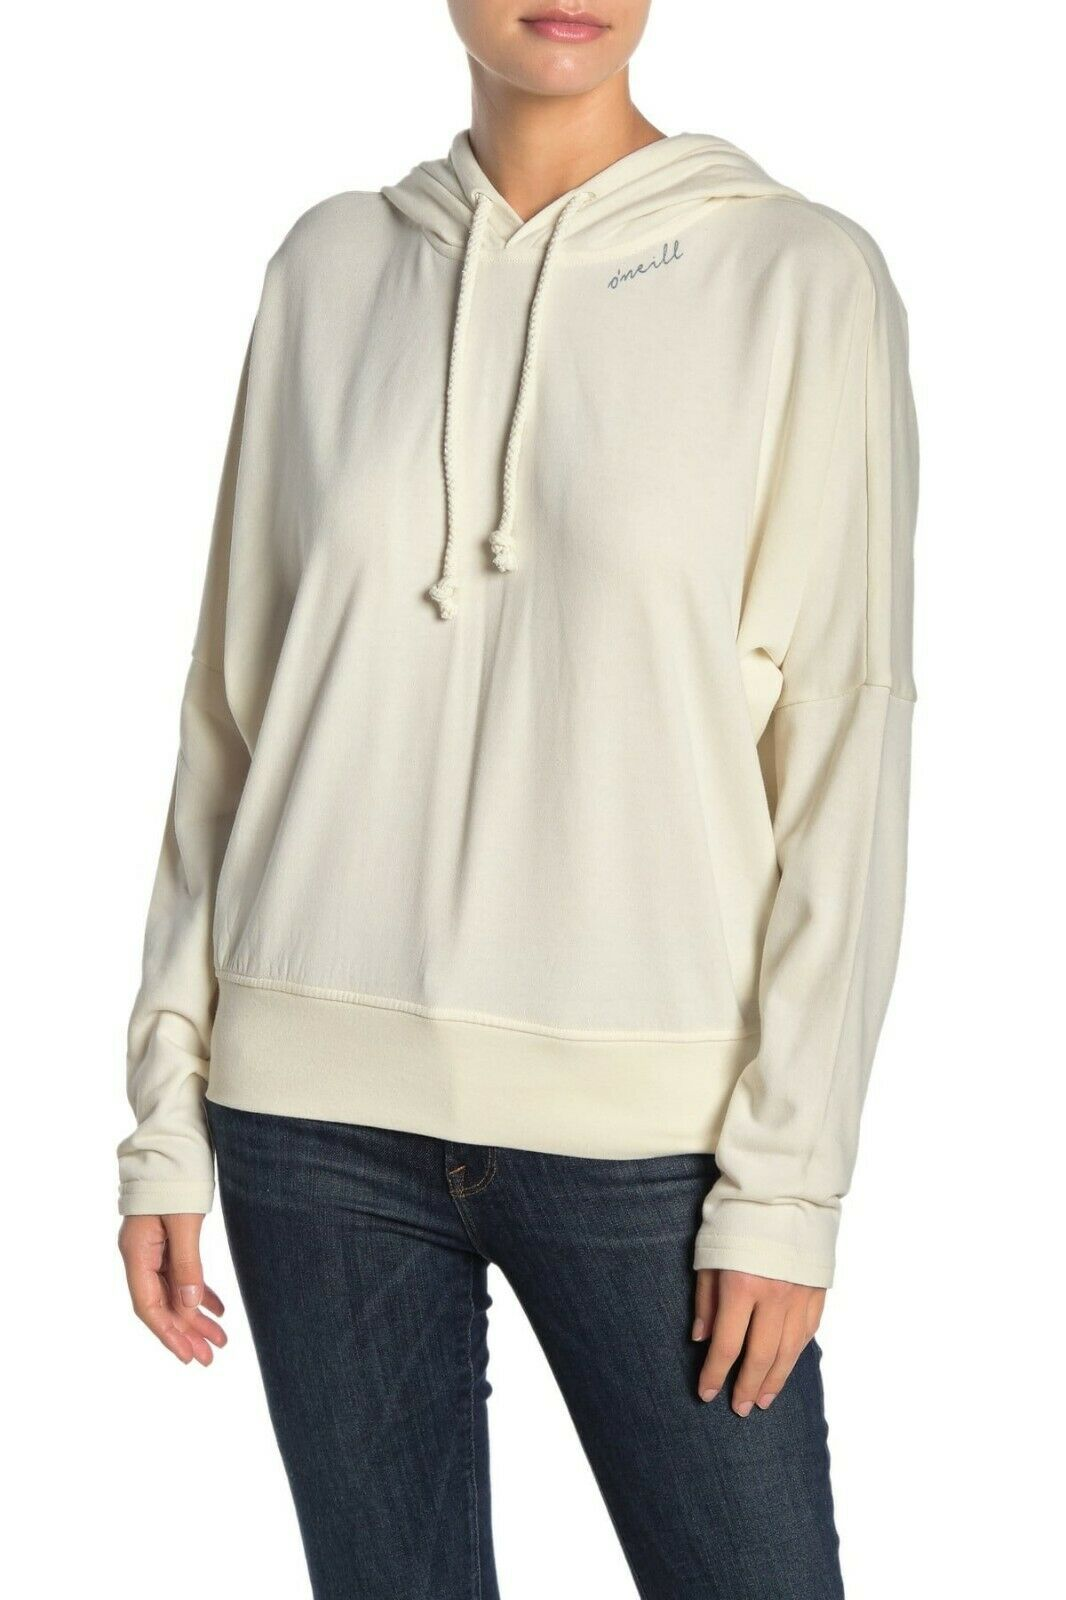 O'Neill ISOLA Off White Graphic Logo Relaxed Pullover Hooded Junior's Sweatshirt